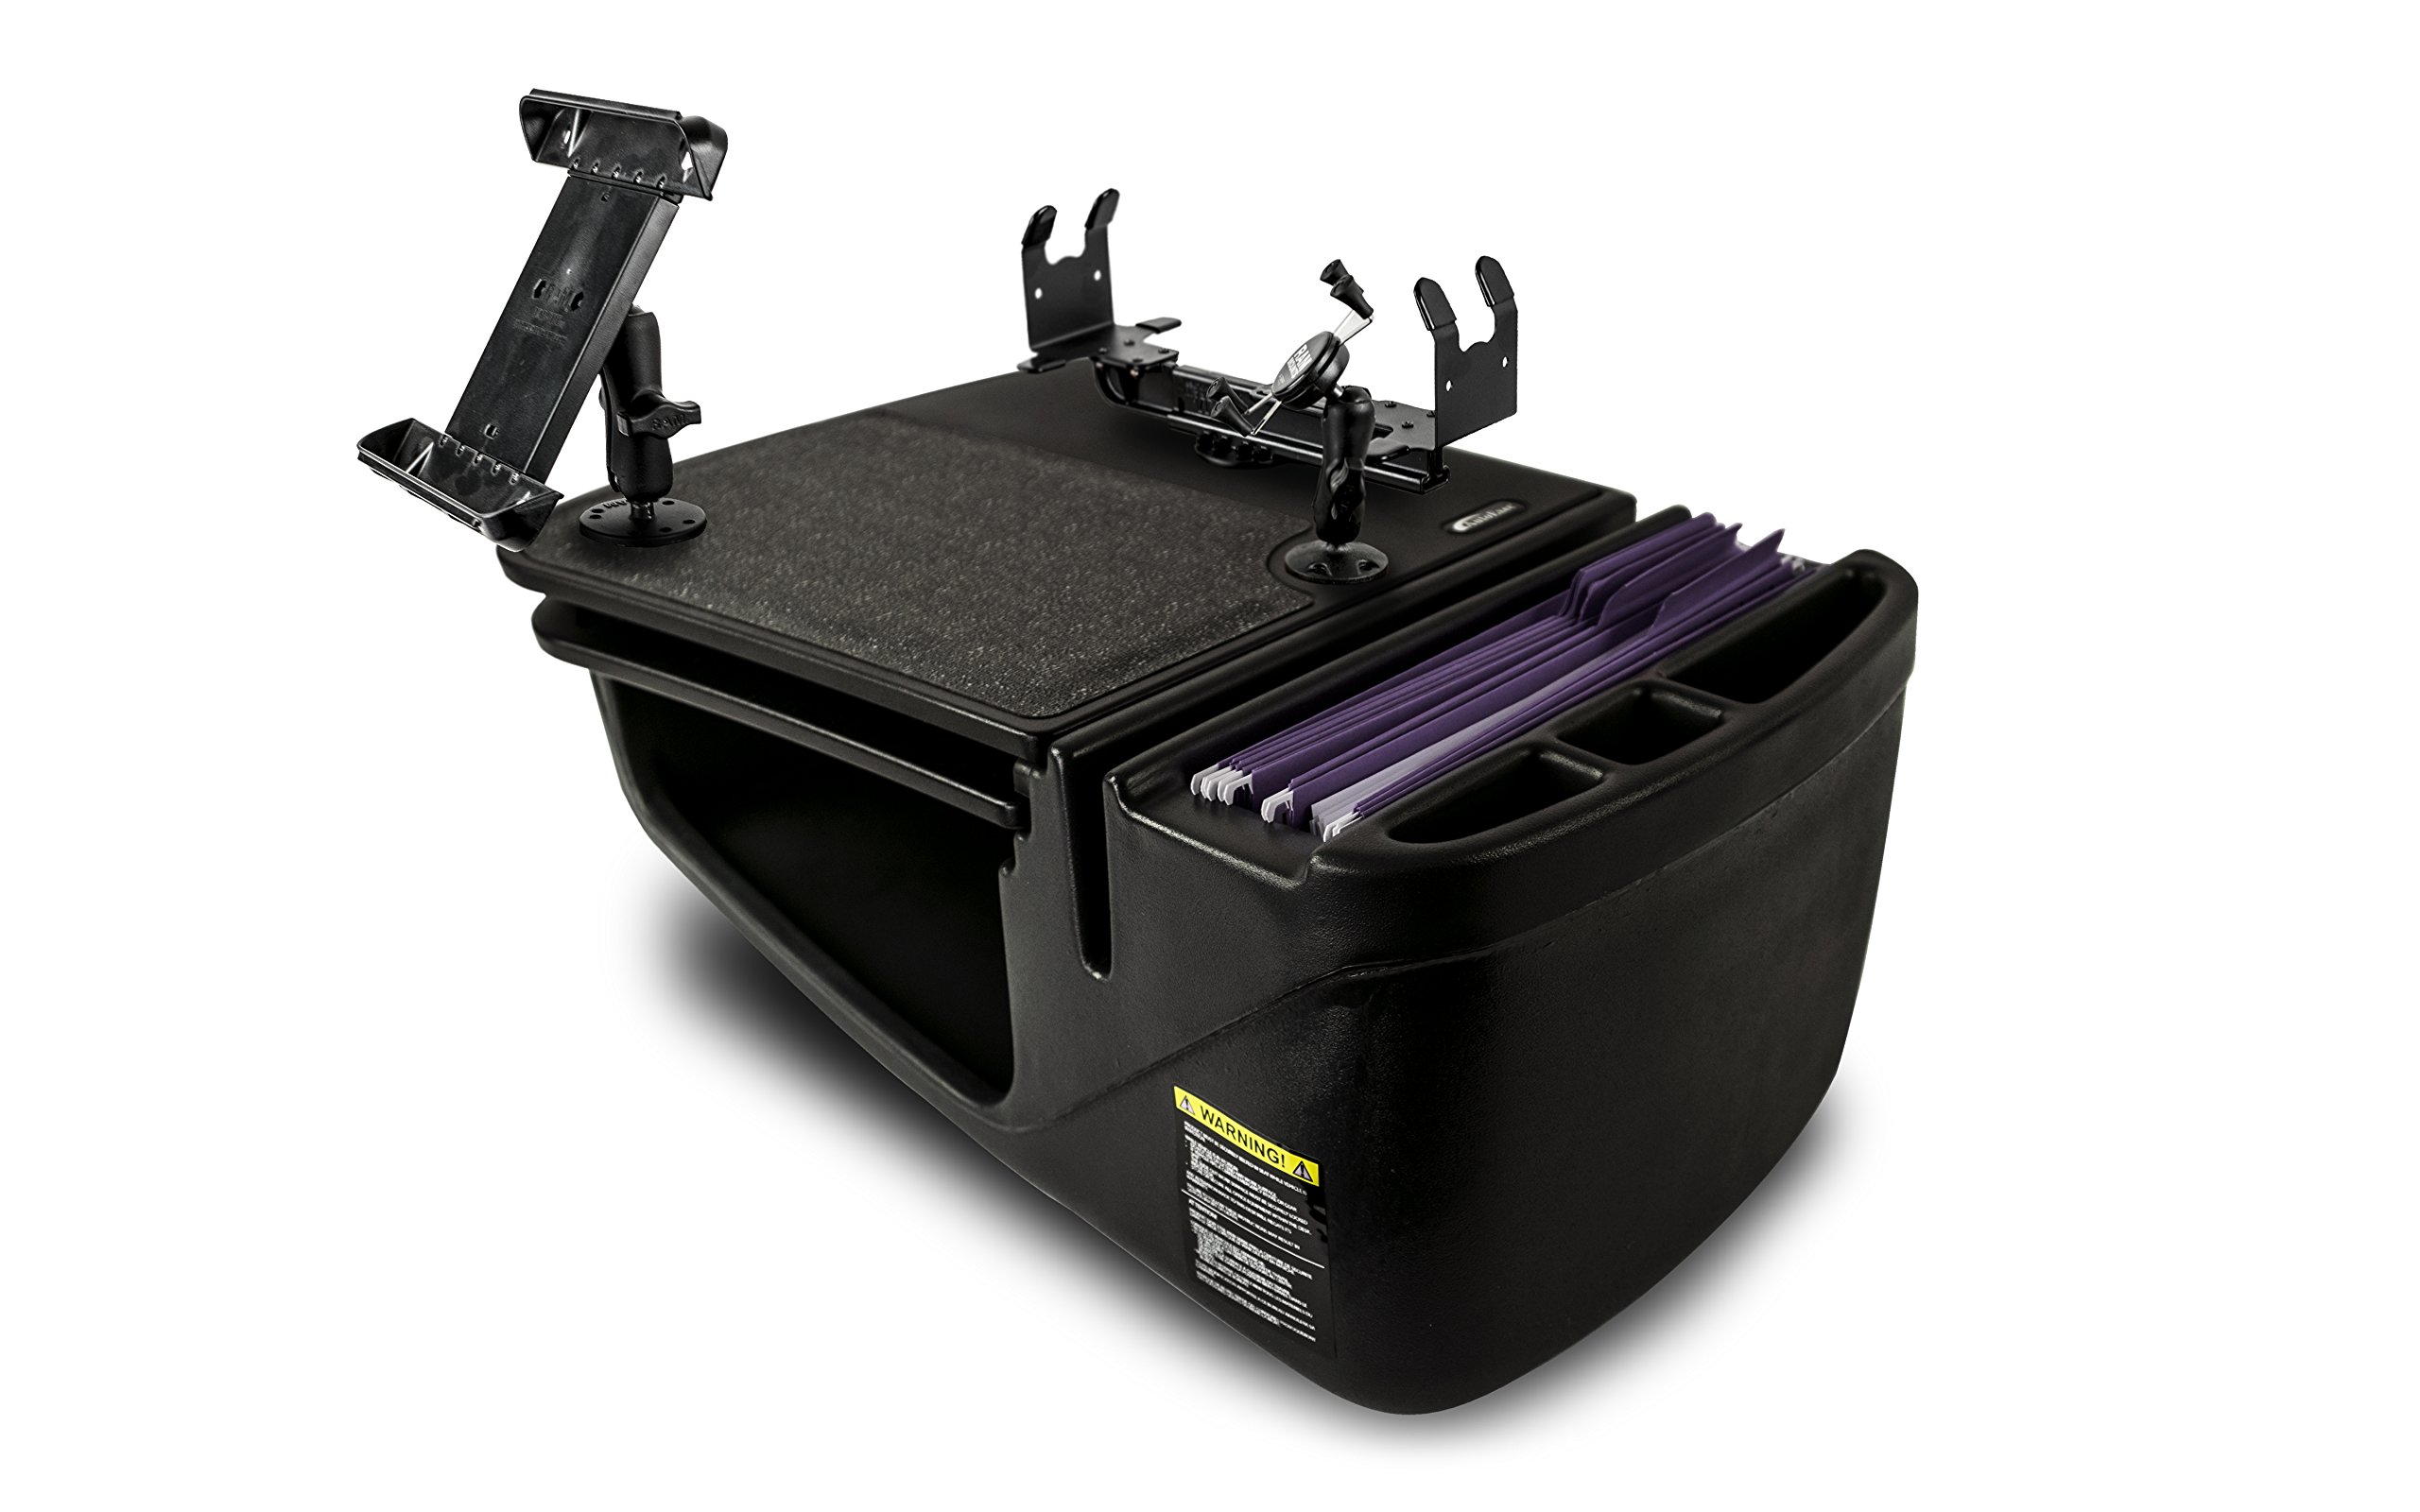 AutoExec AUE19400 GripMaster Car Desk (Black with Built-in Power Inverter, Printer Stand, X-Grip Phone Tablet Mount)